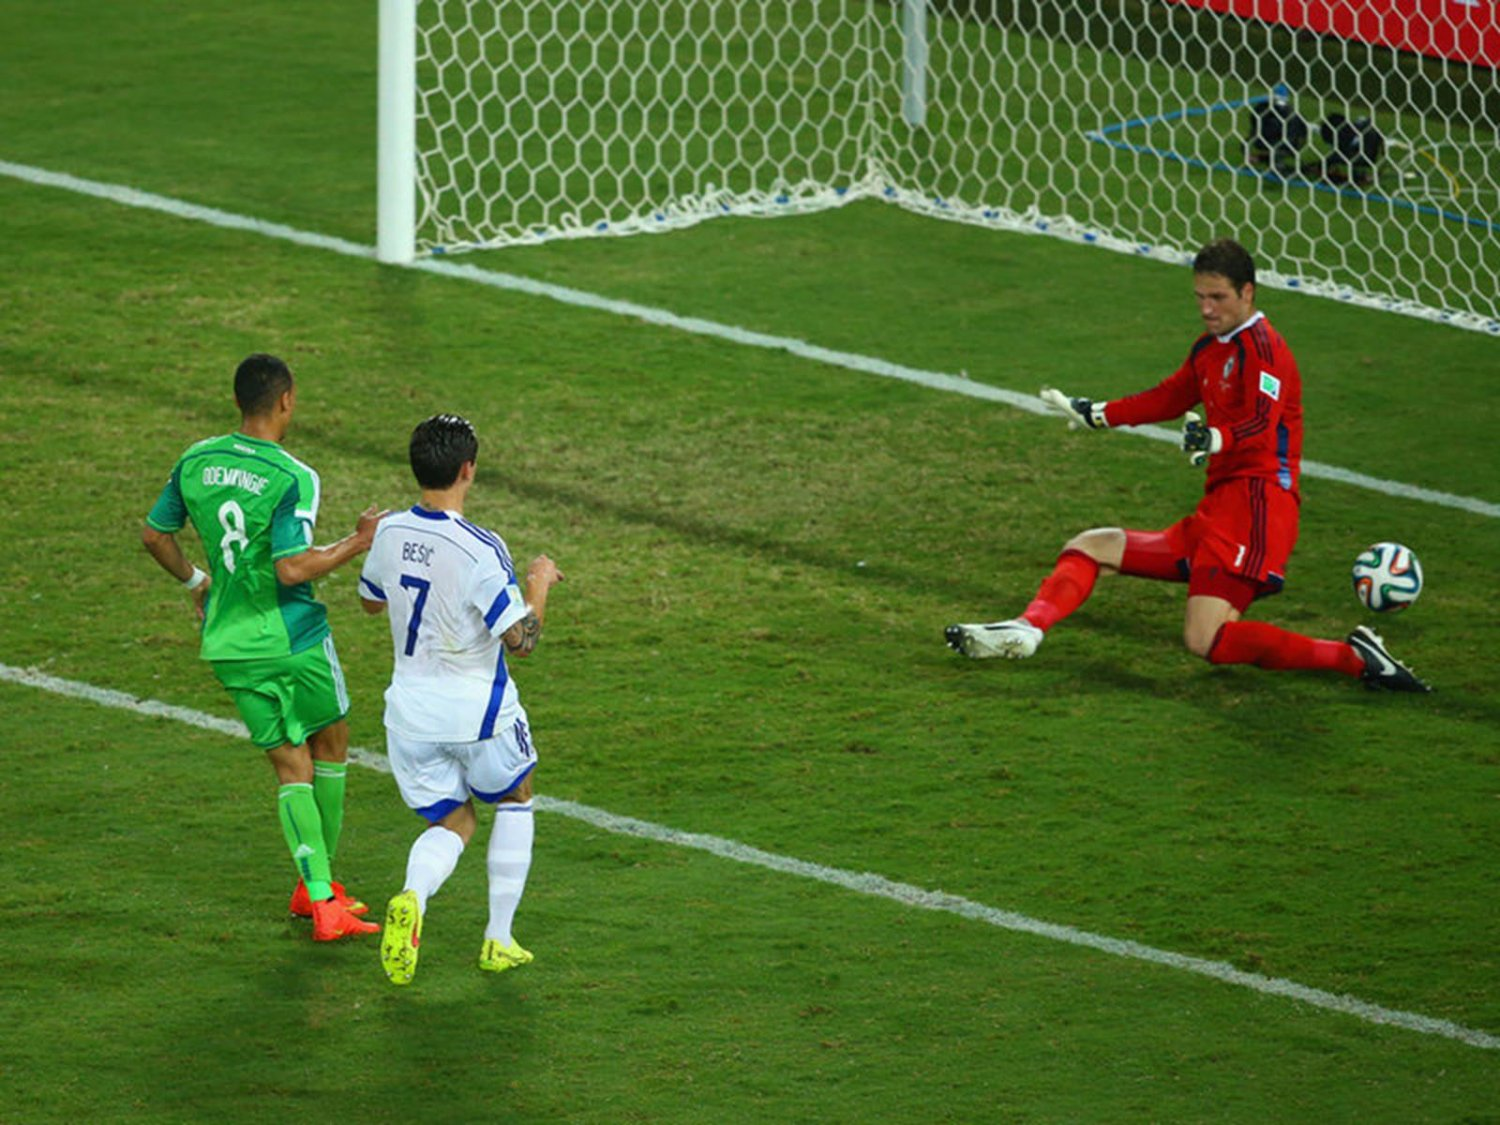 283 - 8 X 6 Photo - Football - FIFA World Cup 2014 - Bosnia V Nigeria - Peter Odemwingie Scores